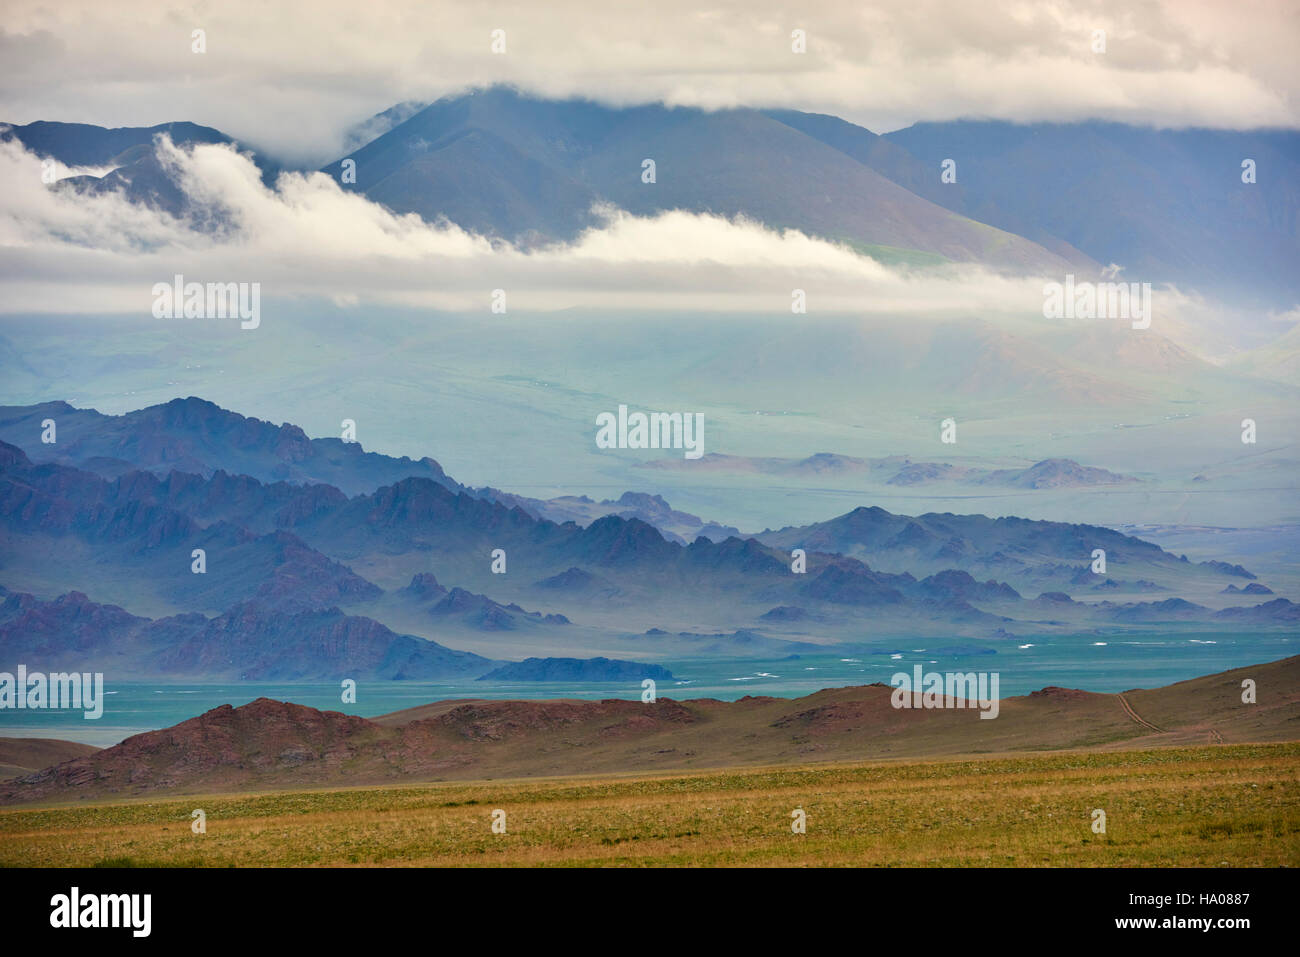 Mongolia, Bayan-Ulgii province, western Mongolia, the colored mountains of the Altay - Stock Image